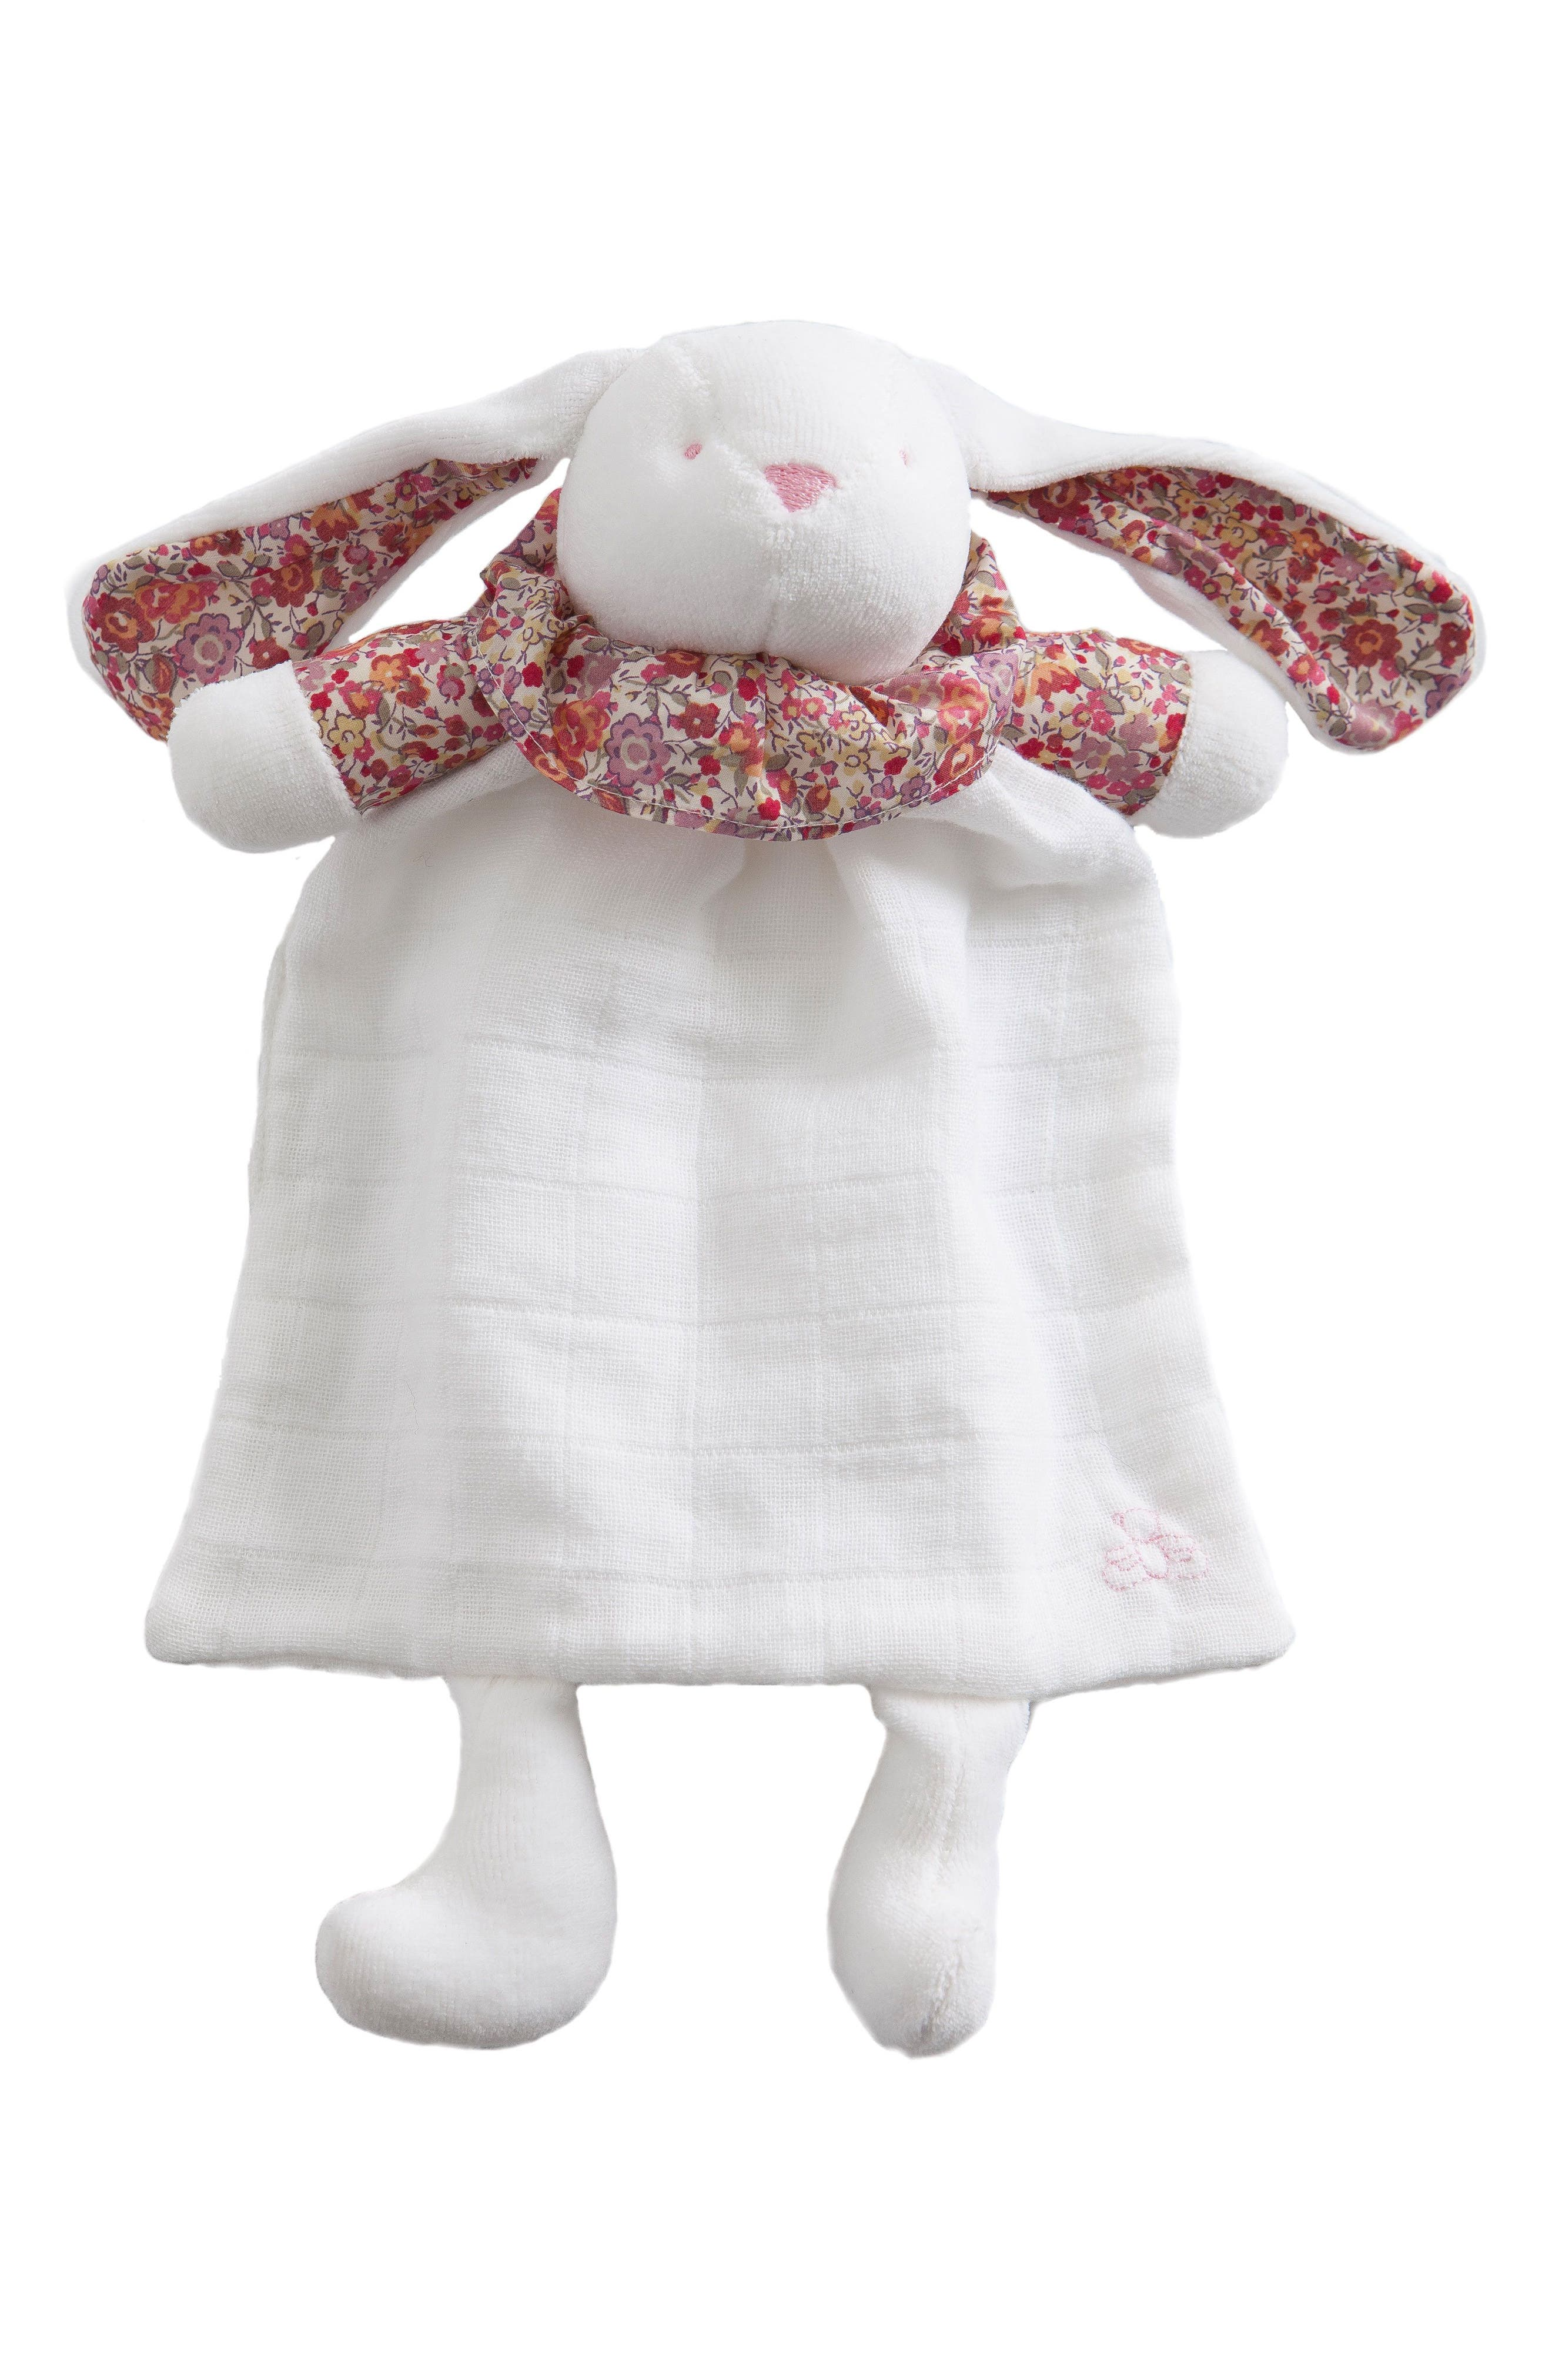 x Liberty of London Rabbit Lovey Toy,                         Main,                         color, RED